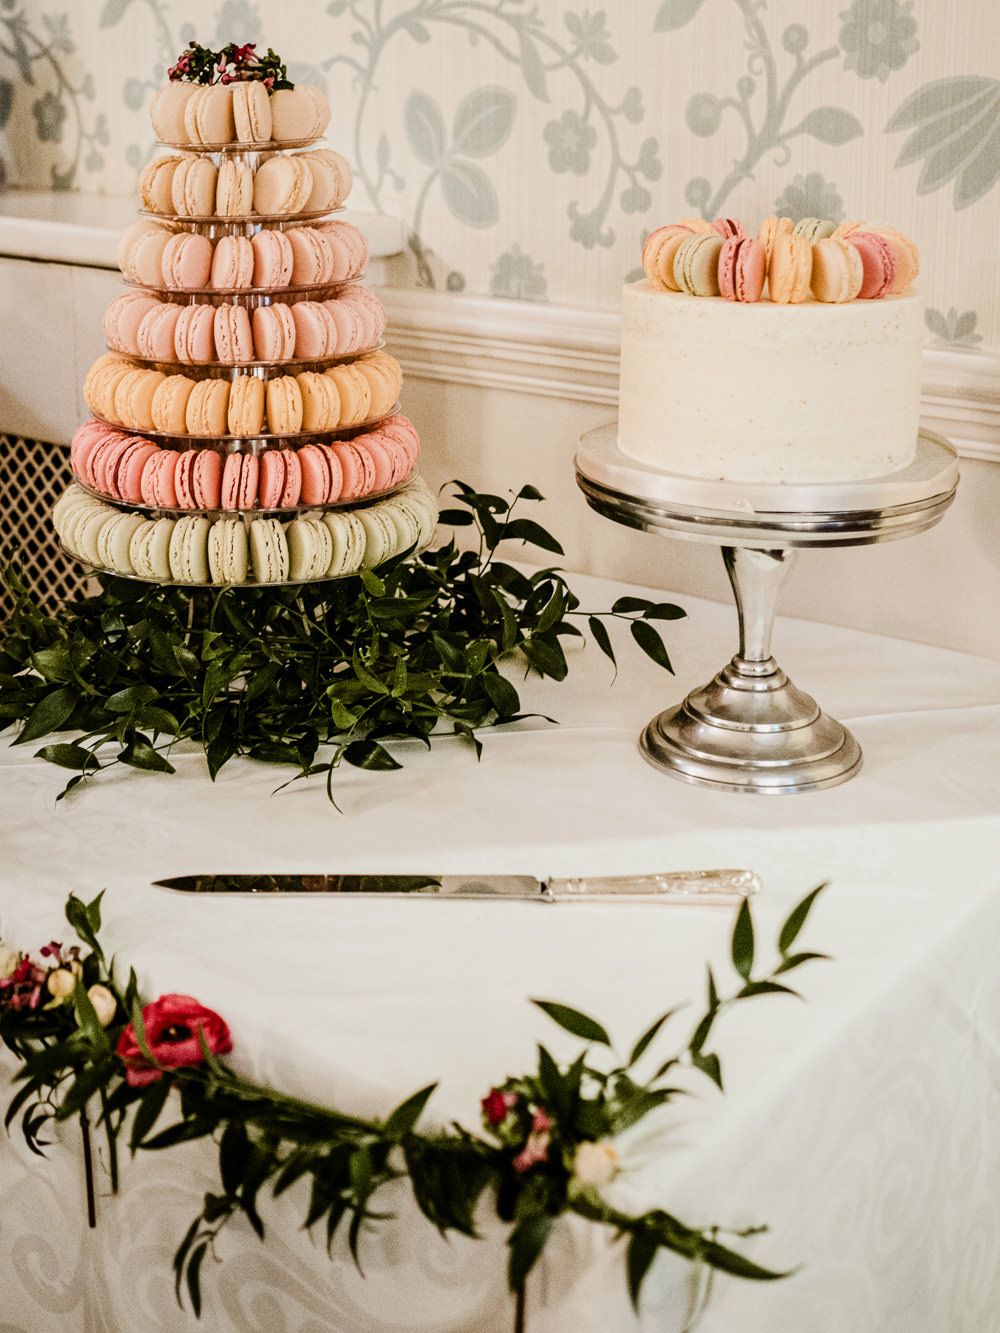 Macaron Tower Cutting Cake Buttercream Greenery Stand Peach Pink Middlethorpe Hall Wedding Andy Withey Photography